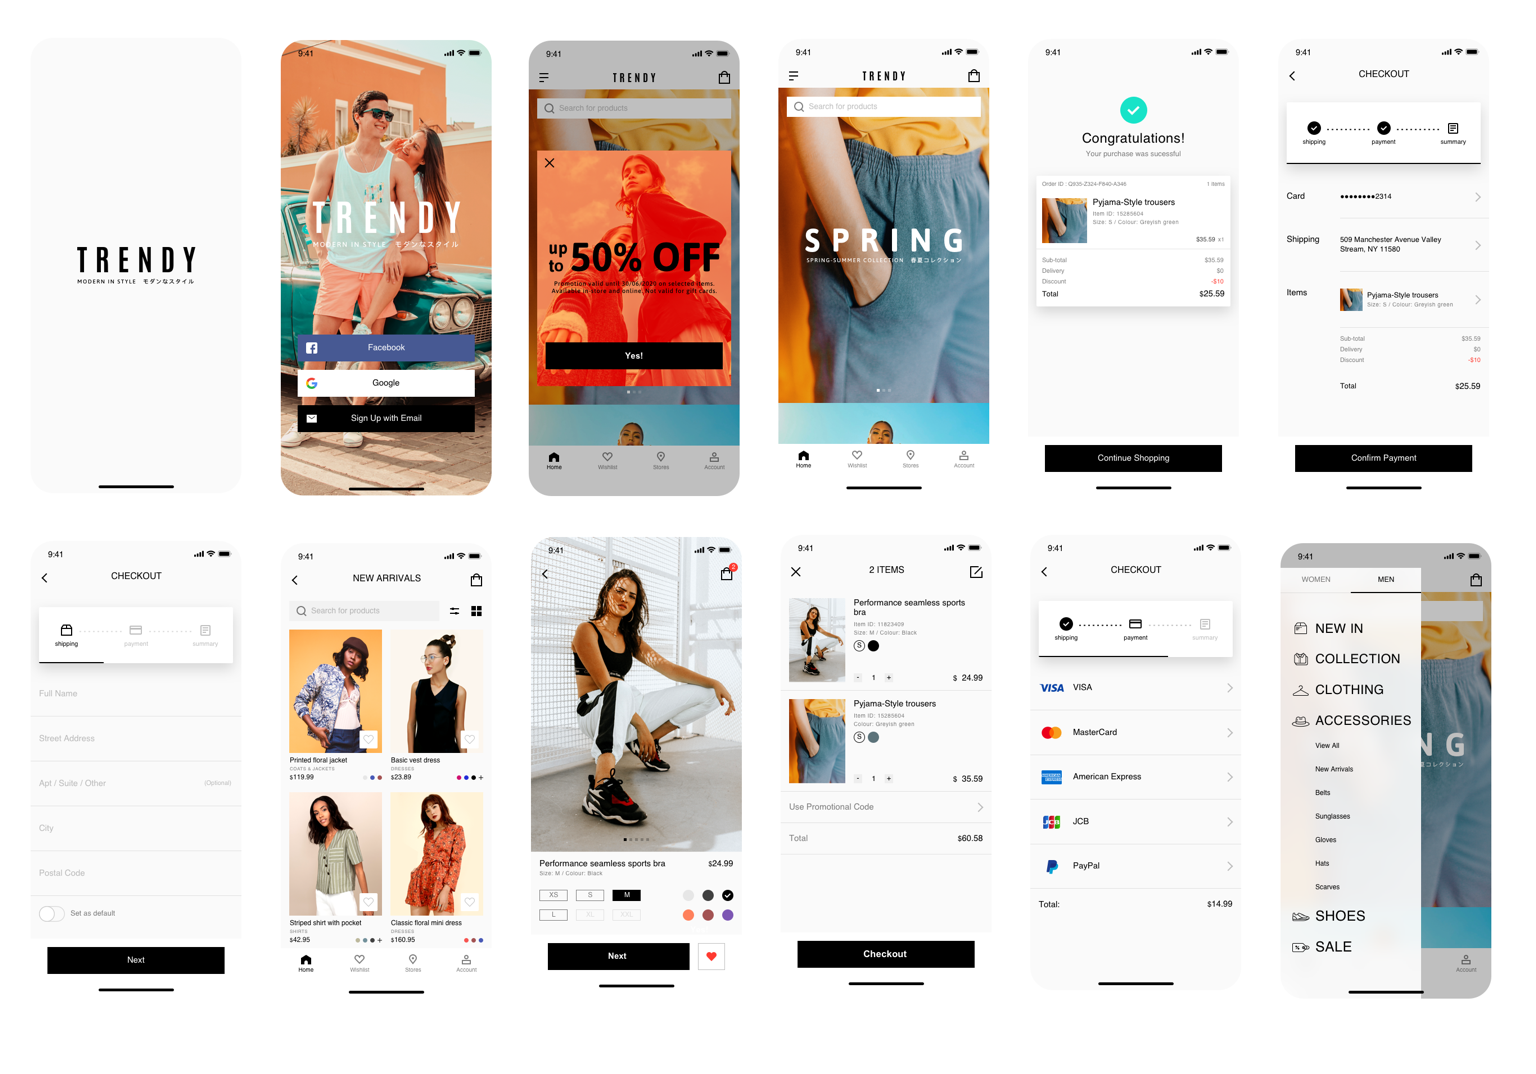 Mobile App UI Design Image